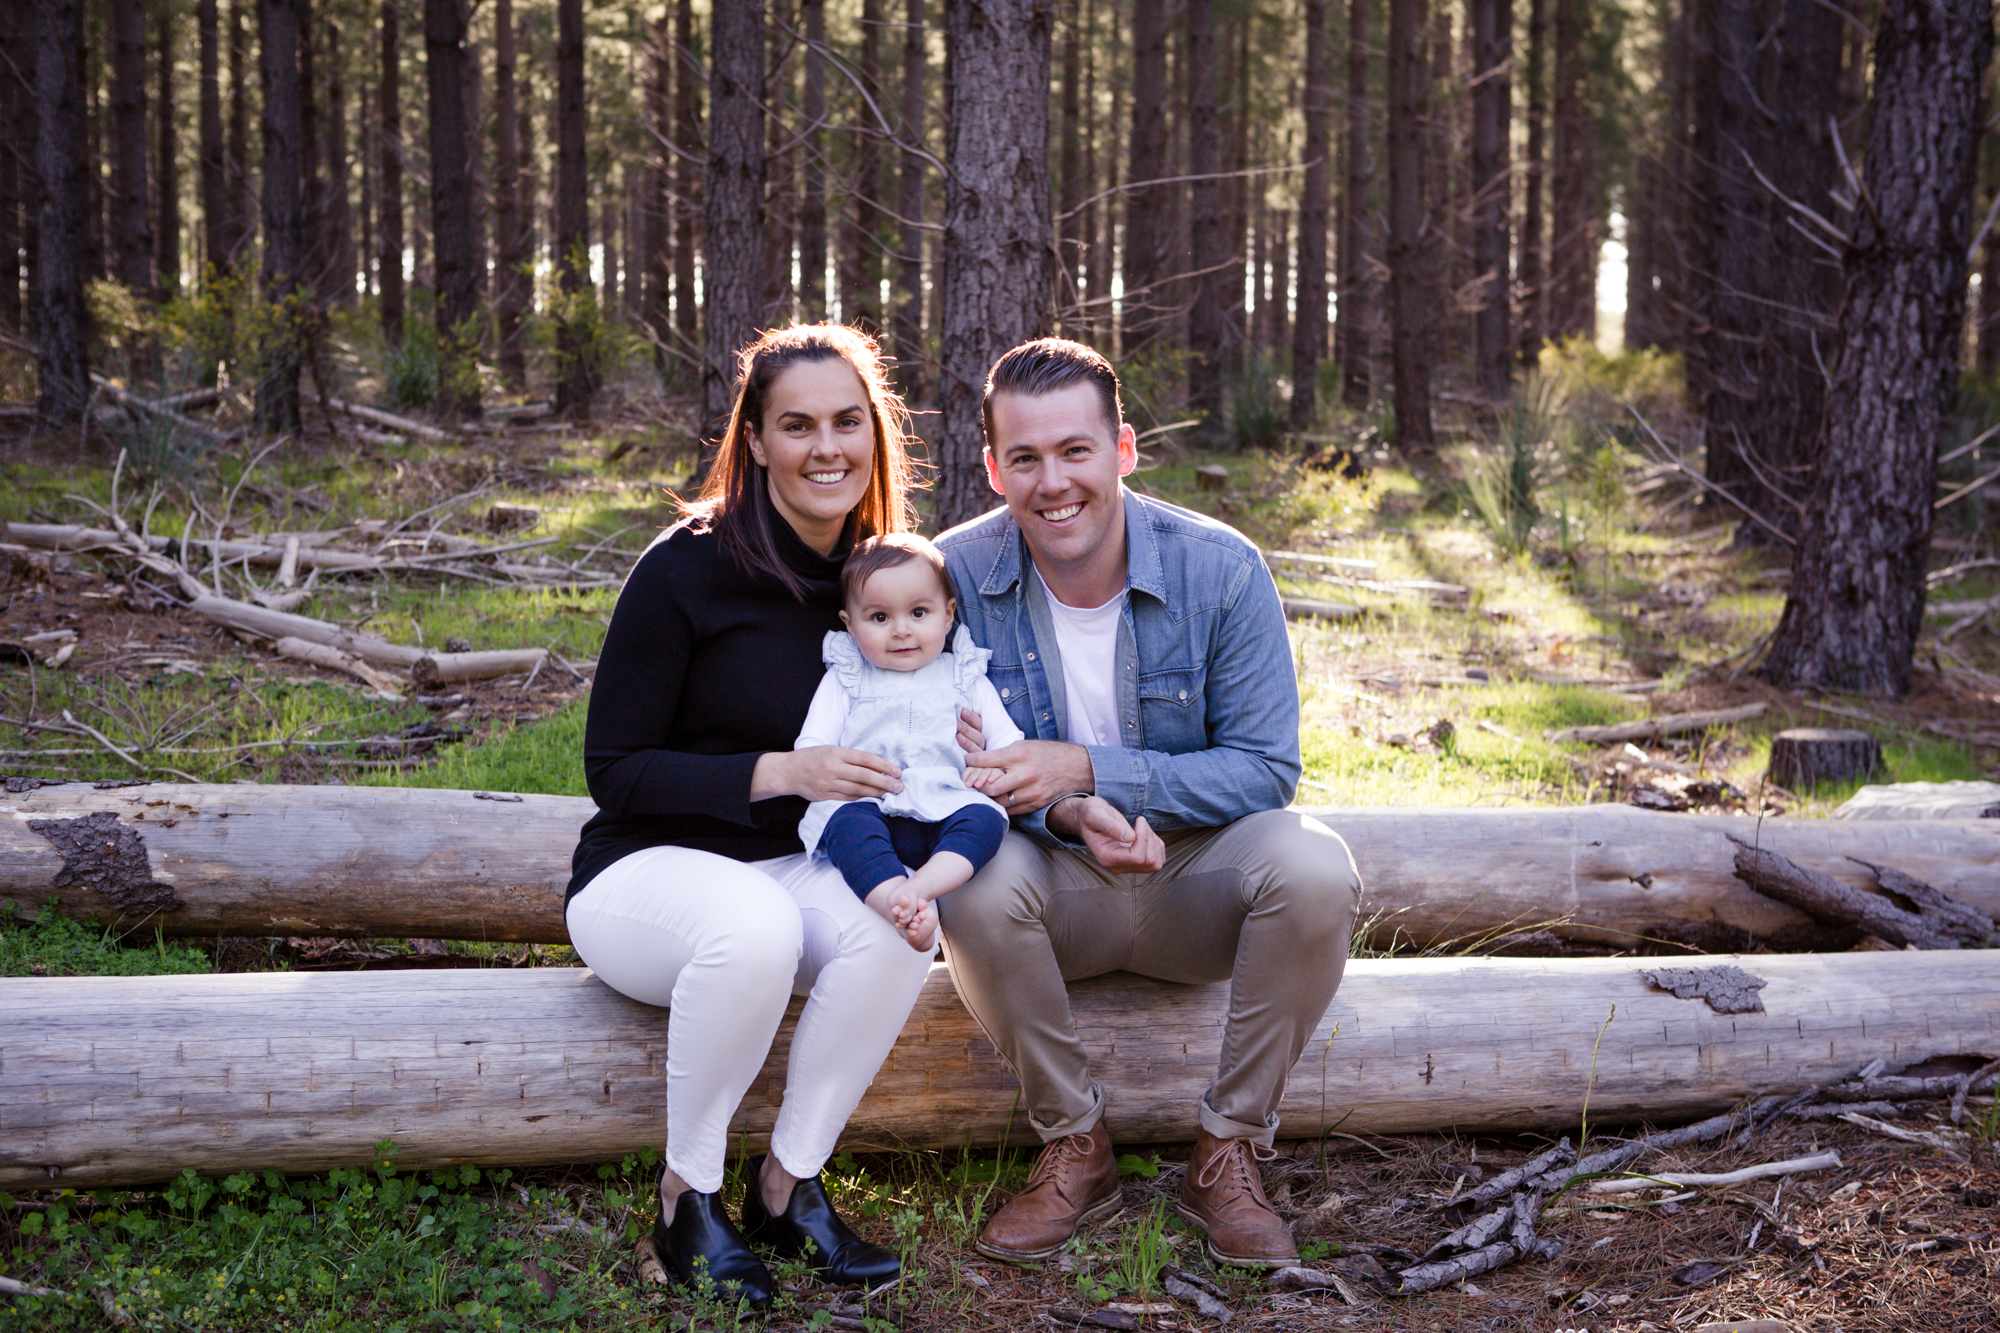 maisie_familyphotos_kuitpo_forest_adelaide_wedding_portrait_lifestyle_photographer_natural_forest_southaustralia_photography-24